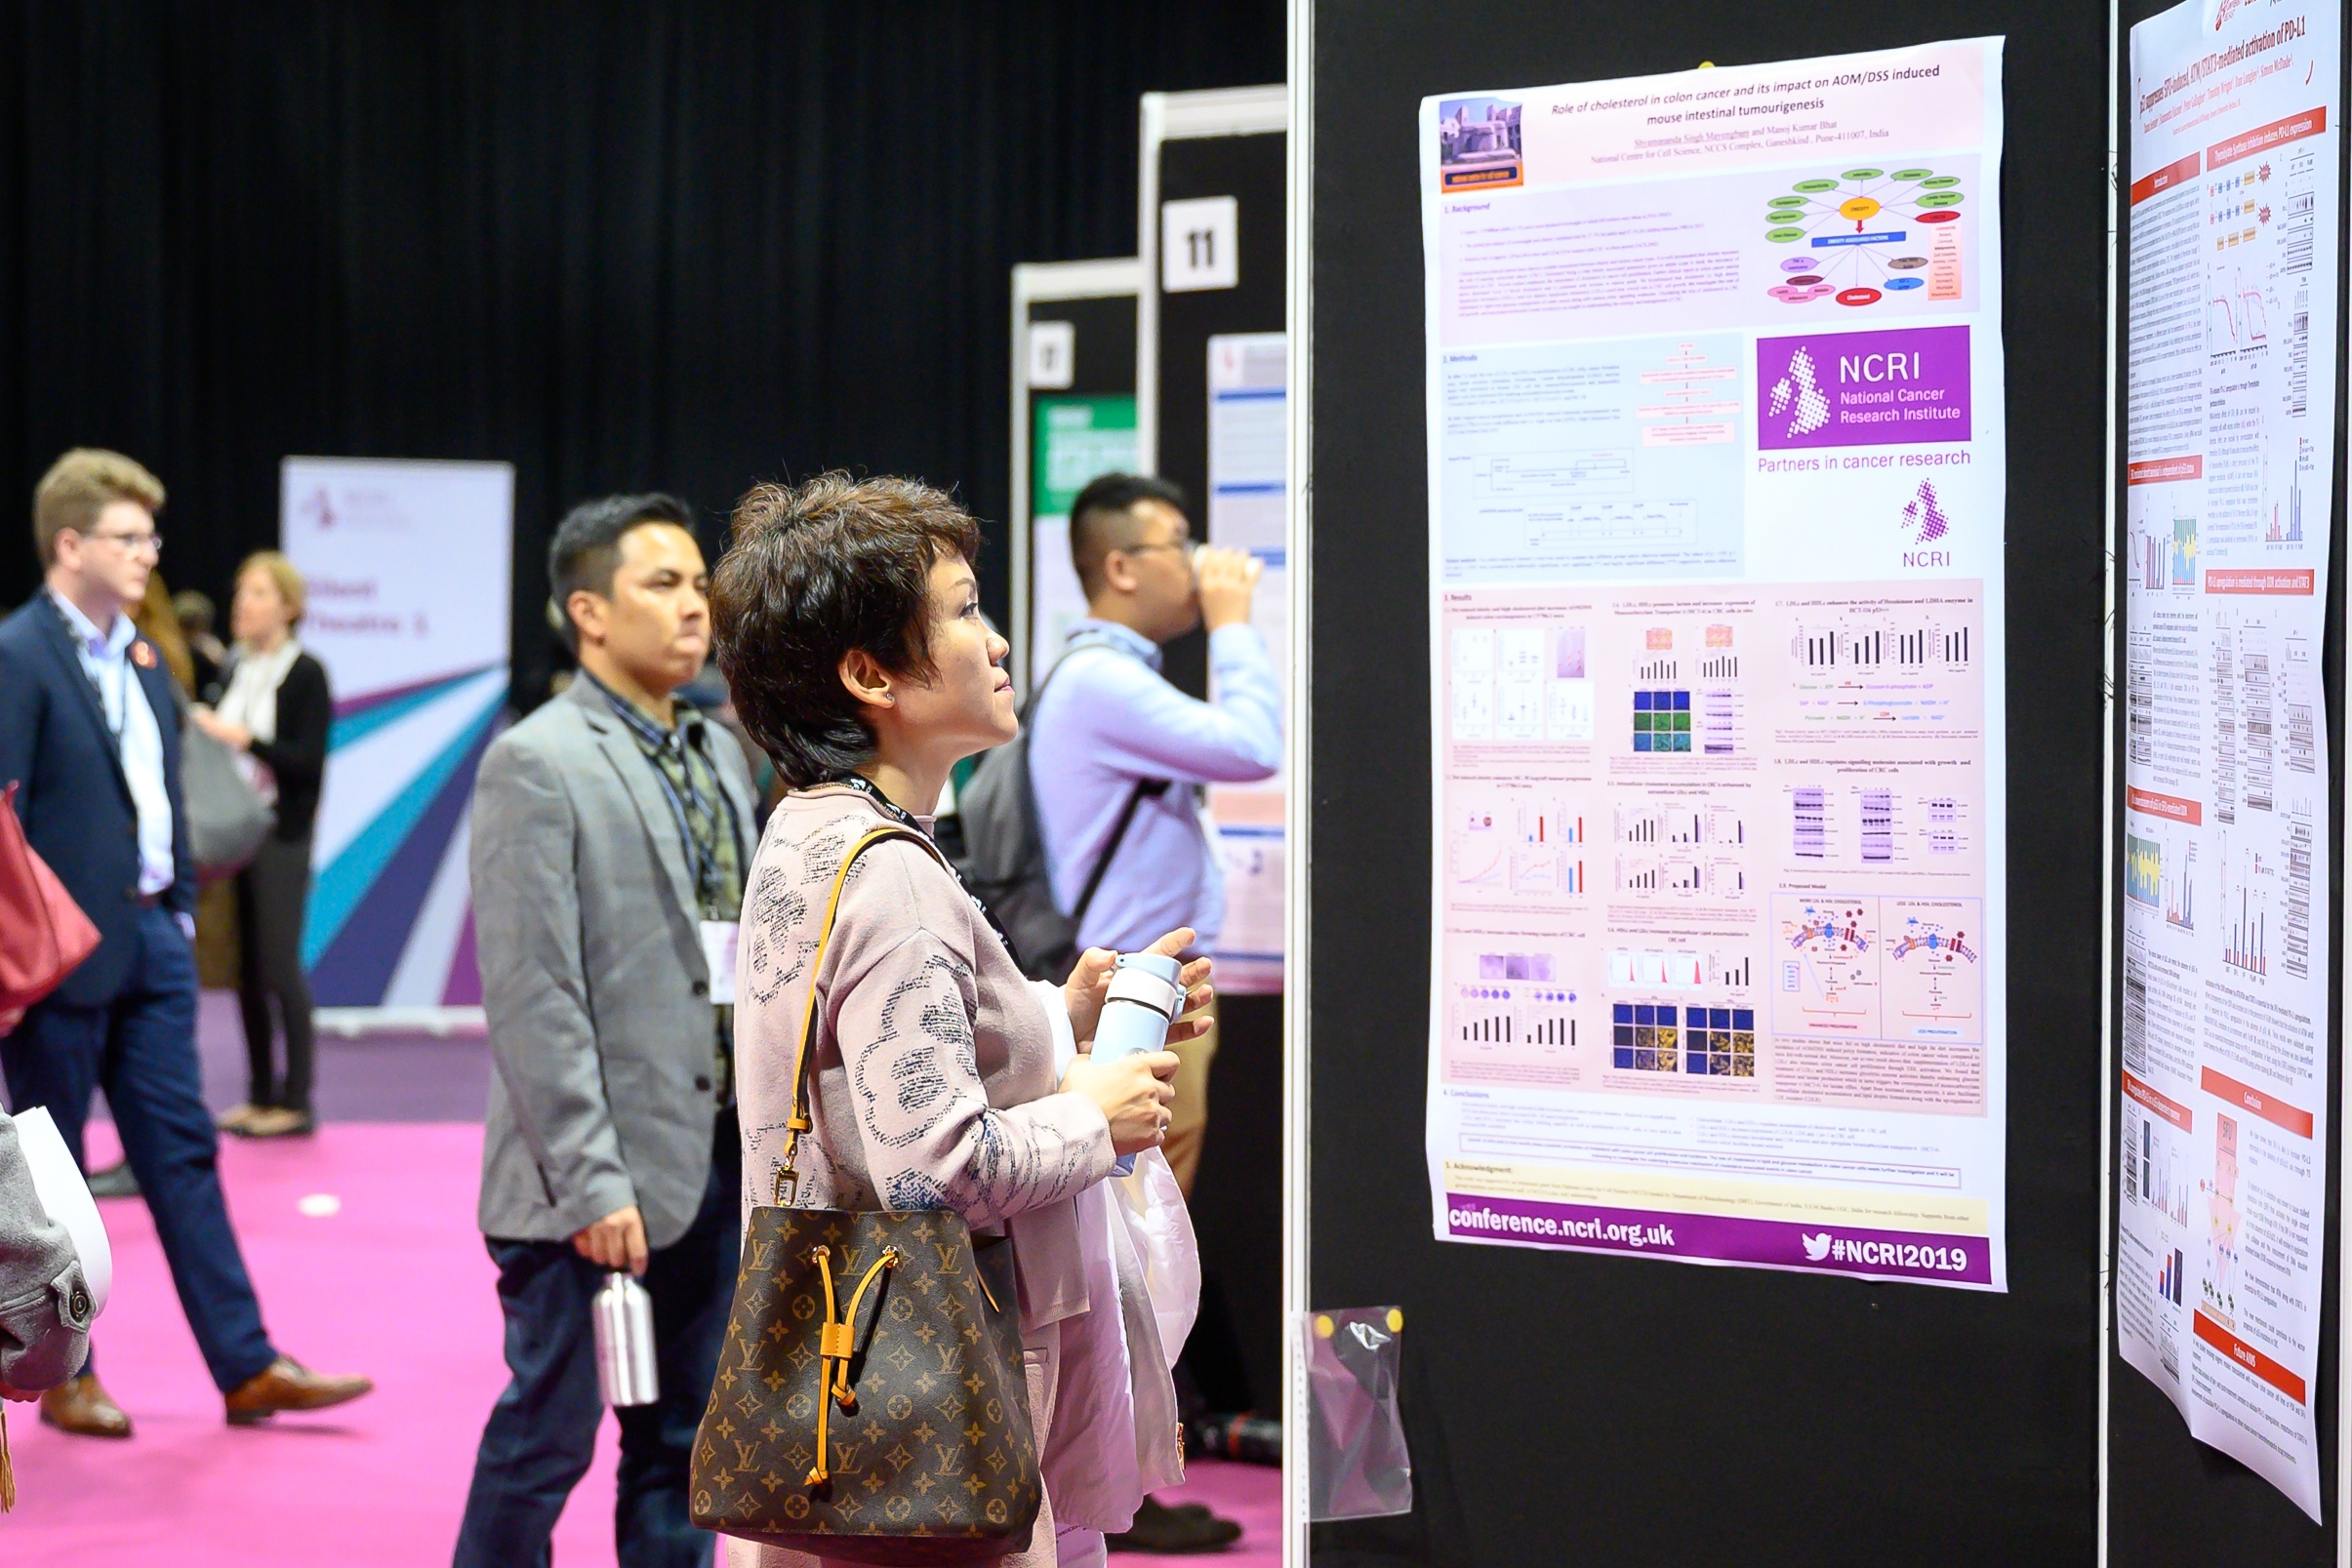 Bringing together all aspects of cancer research, prevention and treatment. A report from the 8th NCRI Cancer Conference